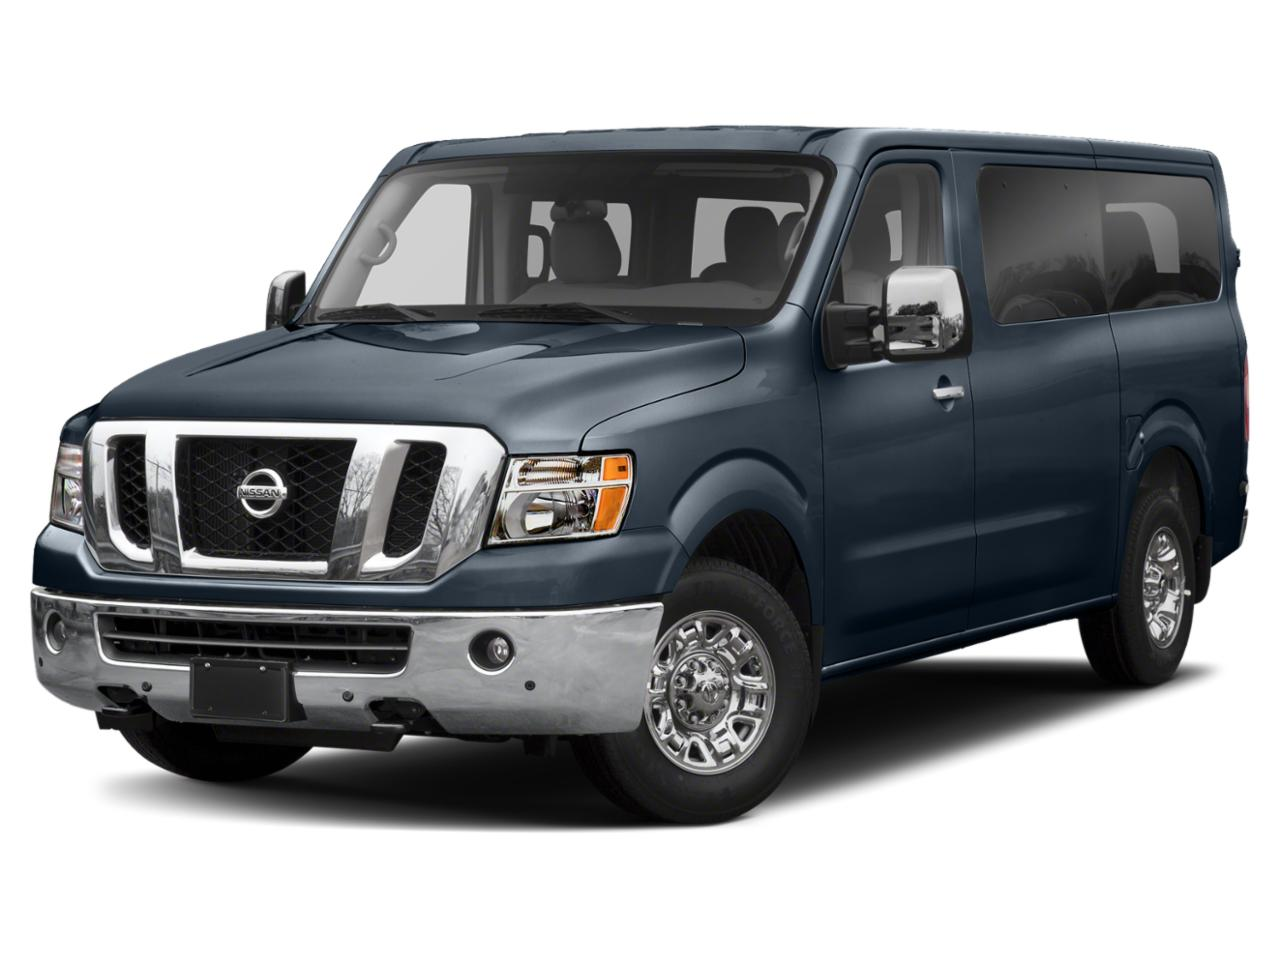 2021 Nissan NV Passenger Vehicle Photo in Appleton, WI 54913